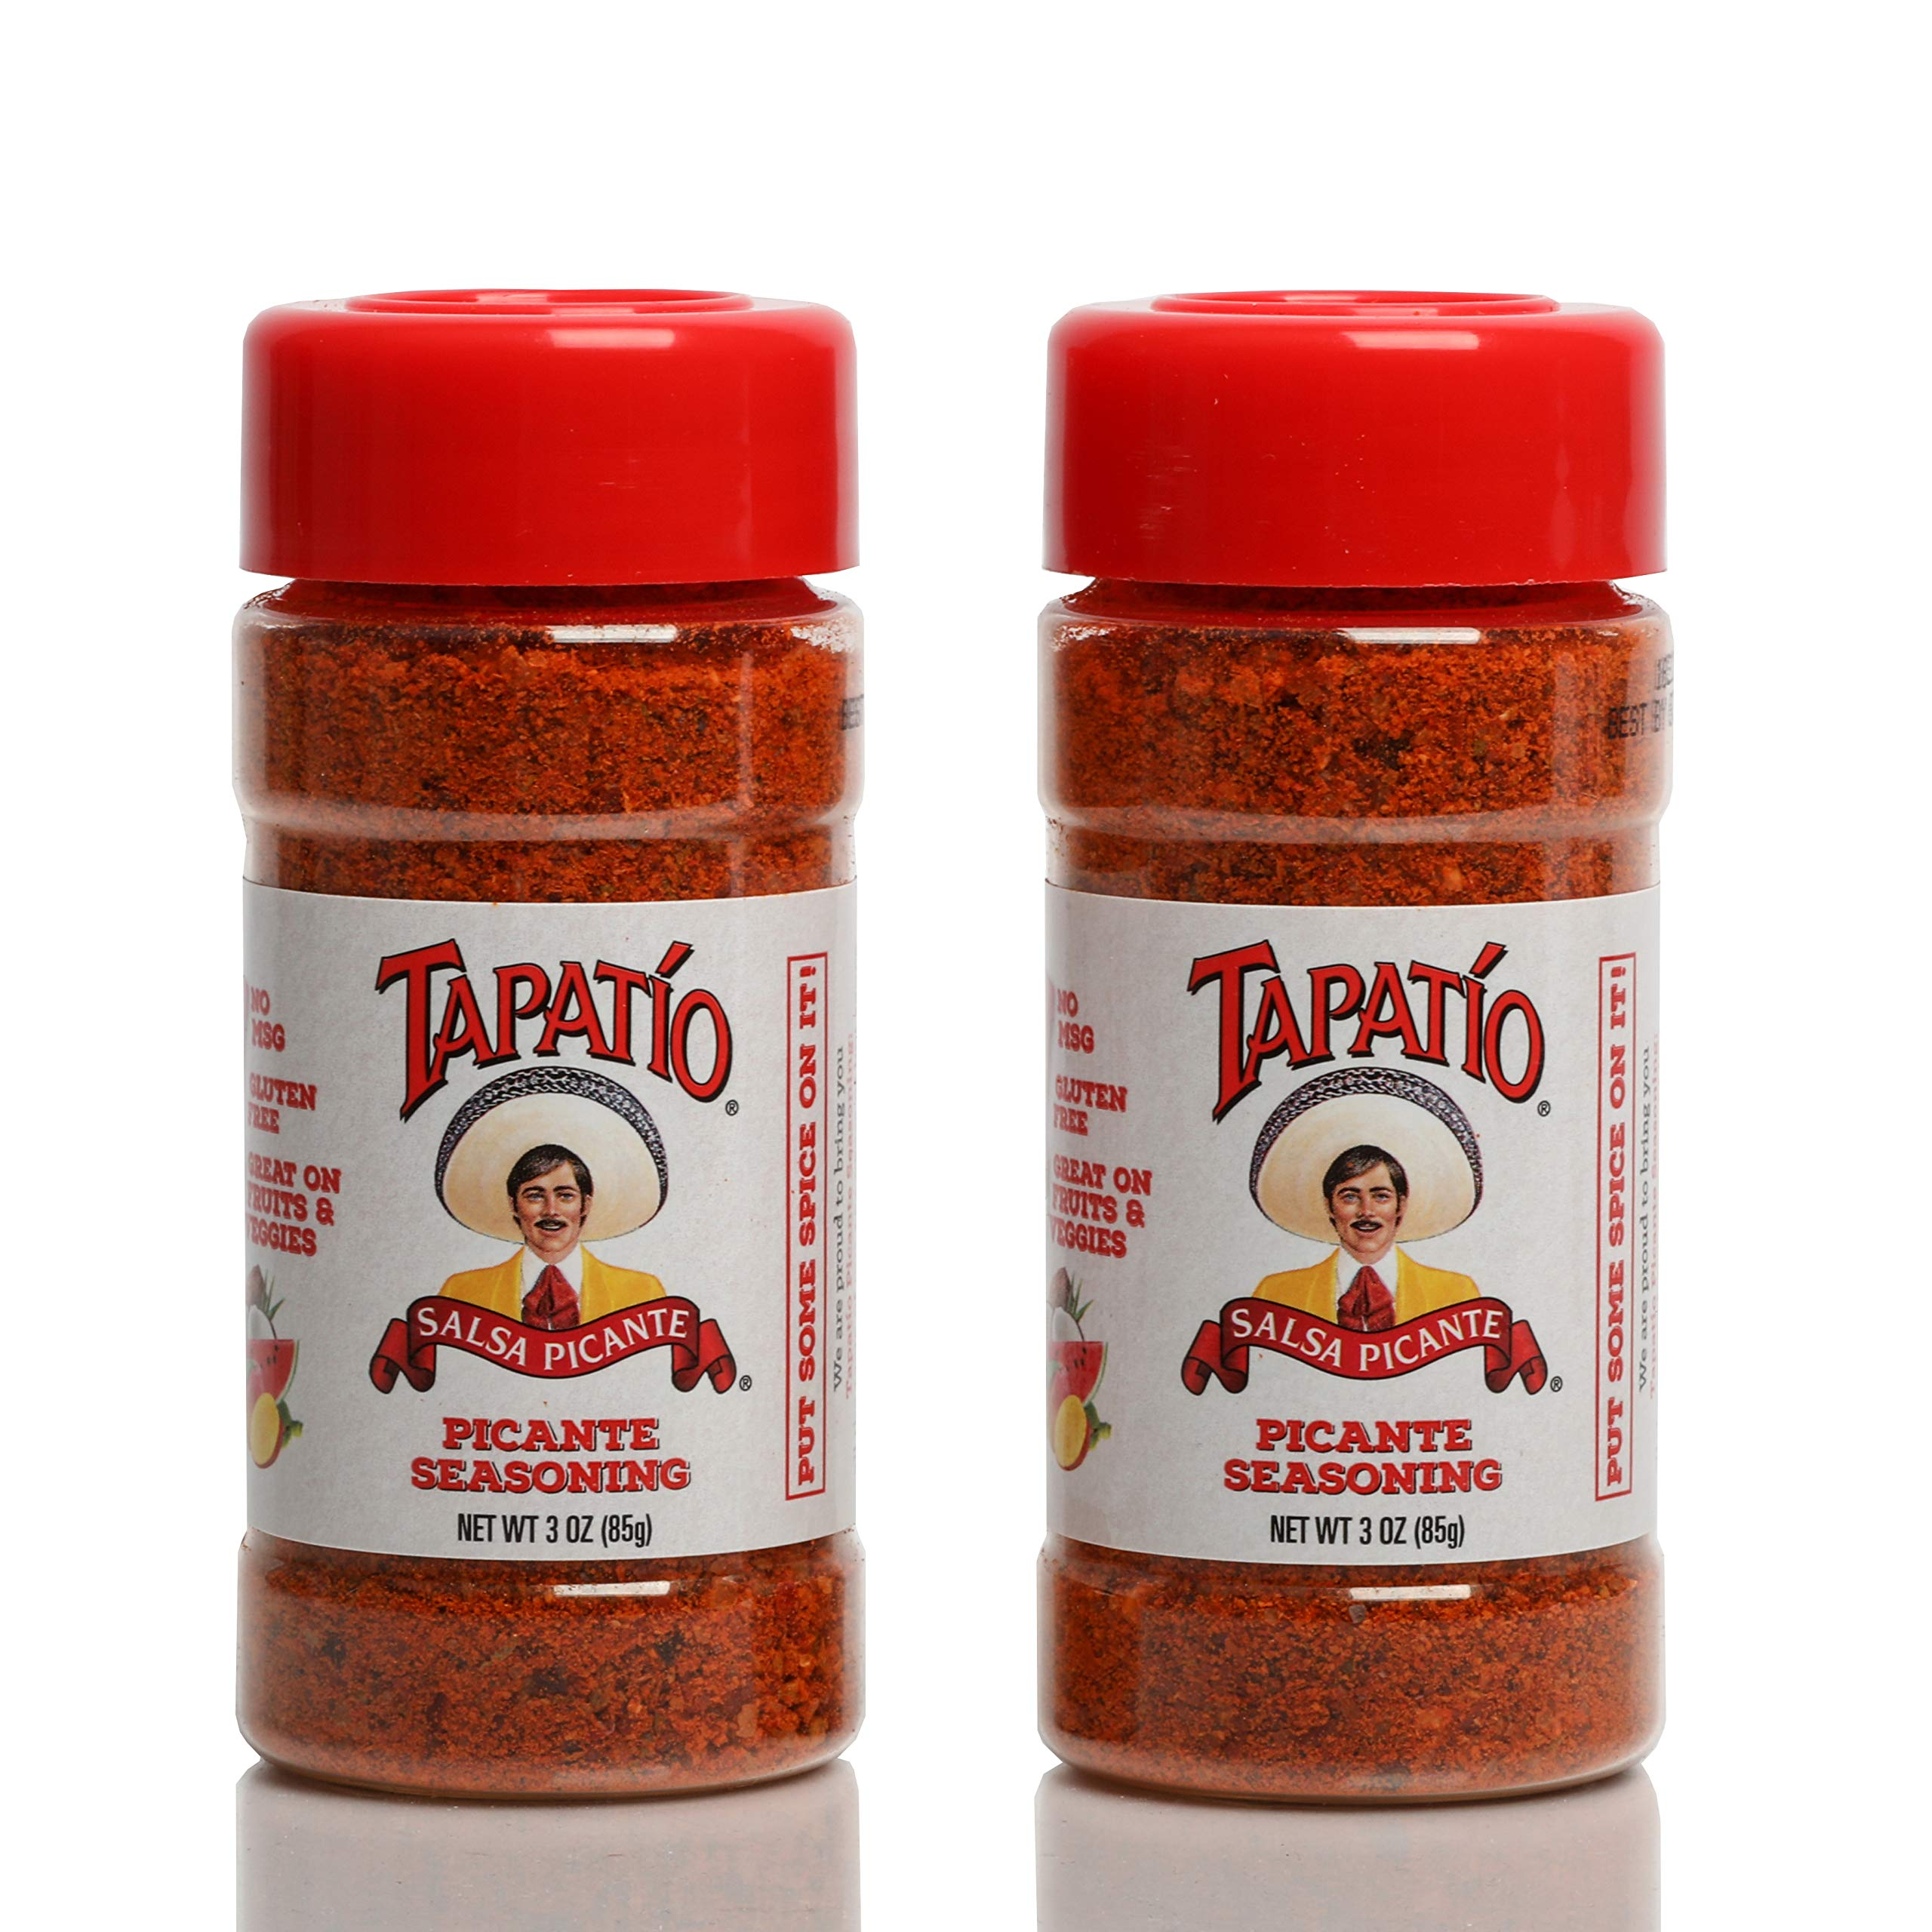 Tapatio Salsa Picante Mexican Seasoning | No MSG, Gluten Free, Vegan and Keto Friendly